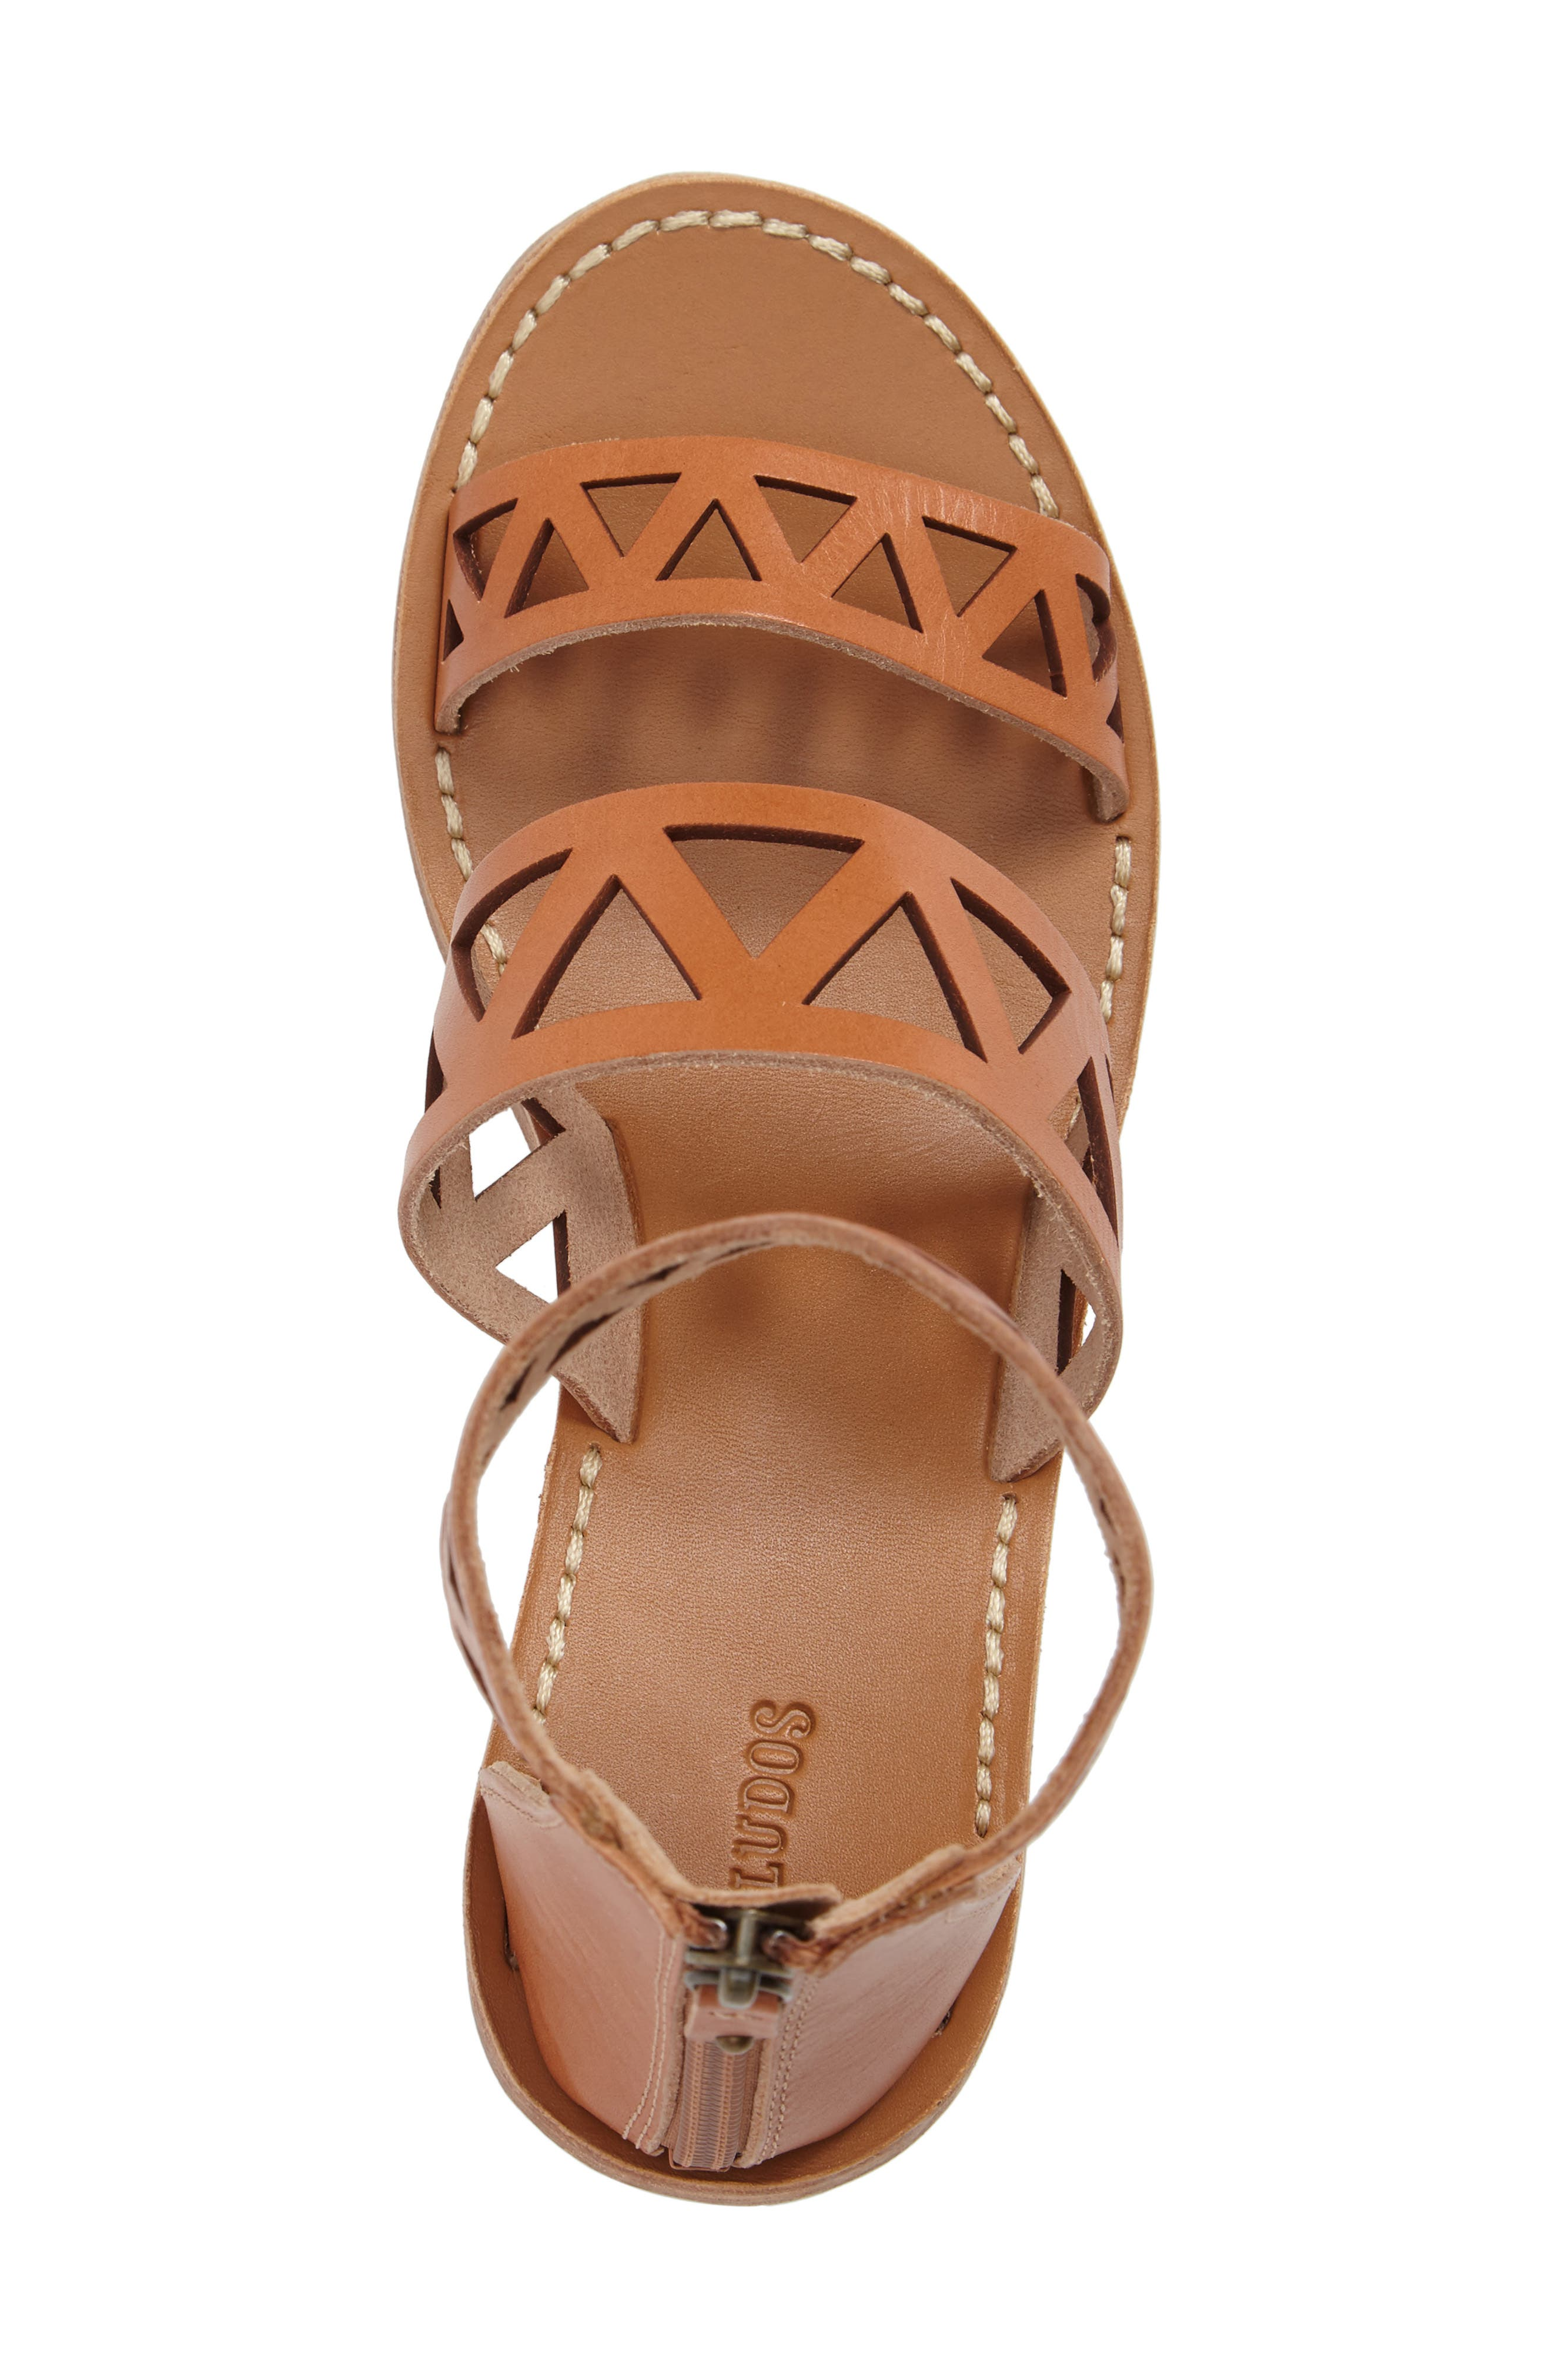 Perforated Ankle Strap Sandal,                             Alternate thumbnail 5, color,                             200